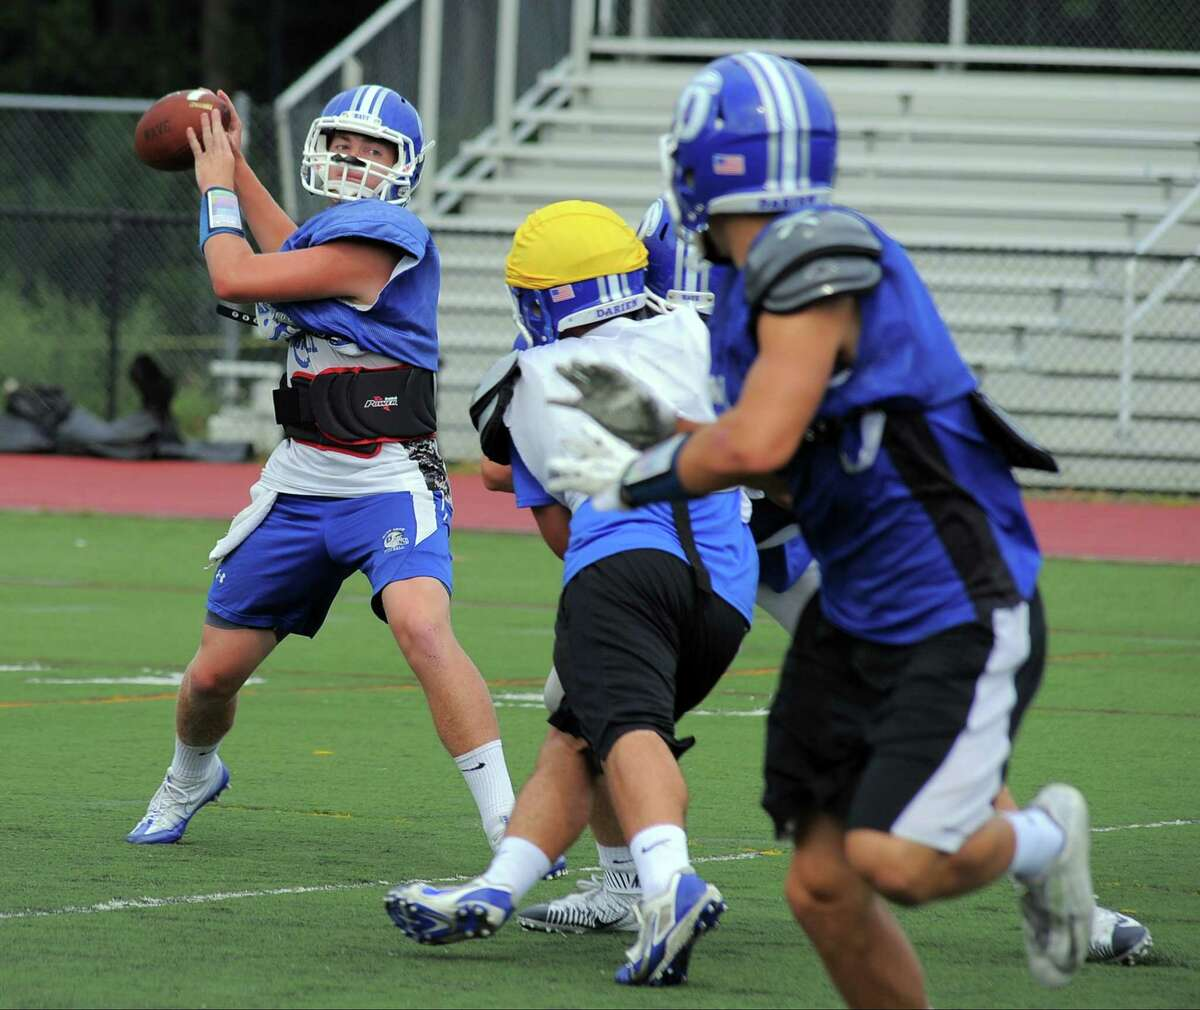 Darien quarterback Brian Peters looks to pass downfield to a receiver at a varsity football practice at the high school in Darien on Sept. 1, 2016. Finlay Collins